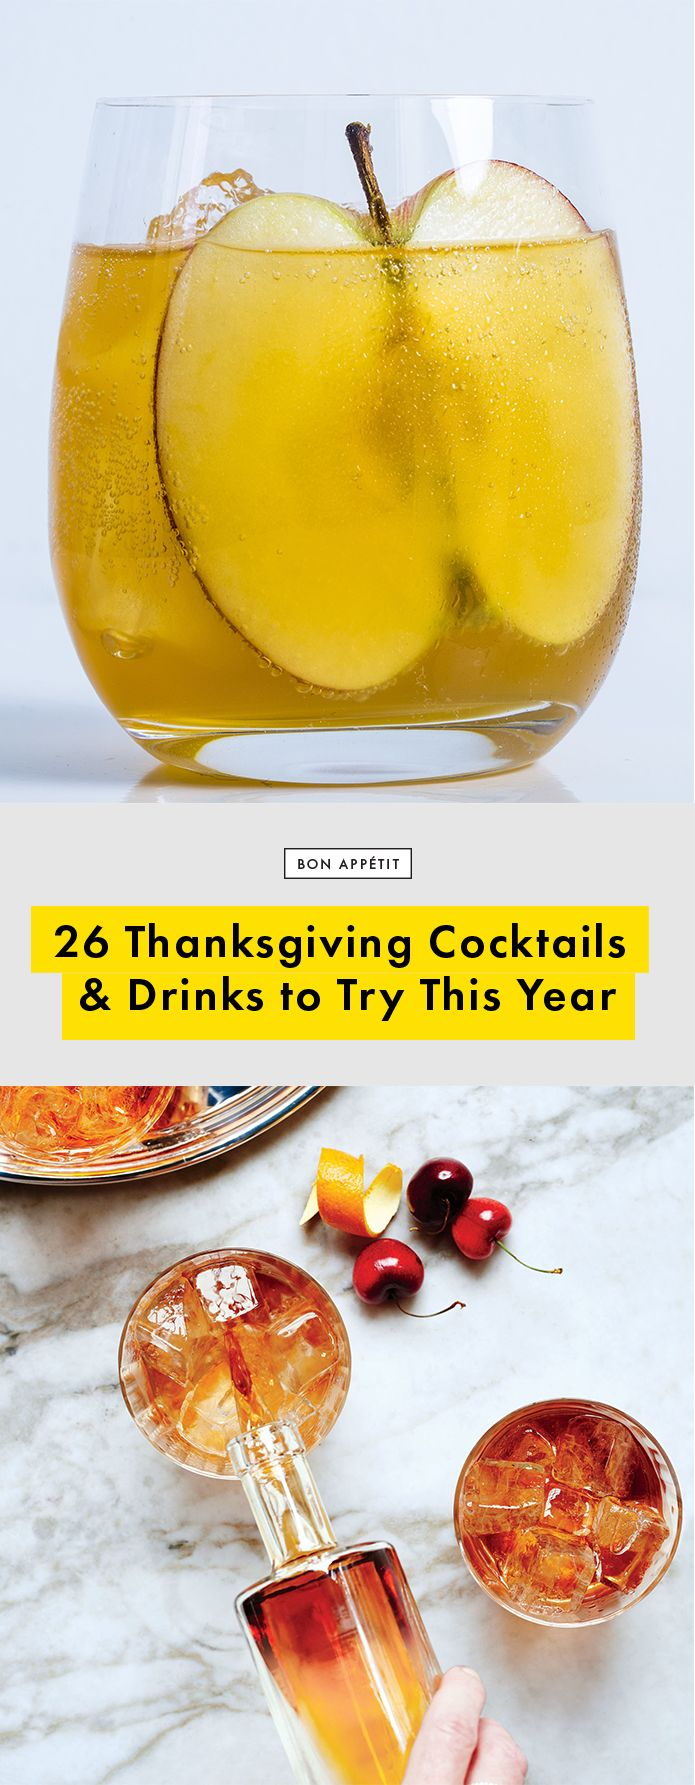 26 Thanksgiving Cocktail & Drink Recipes to Try This Year | Bon Appetit